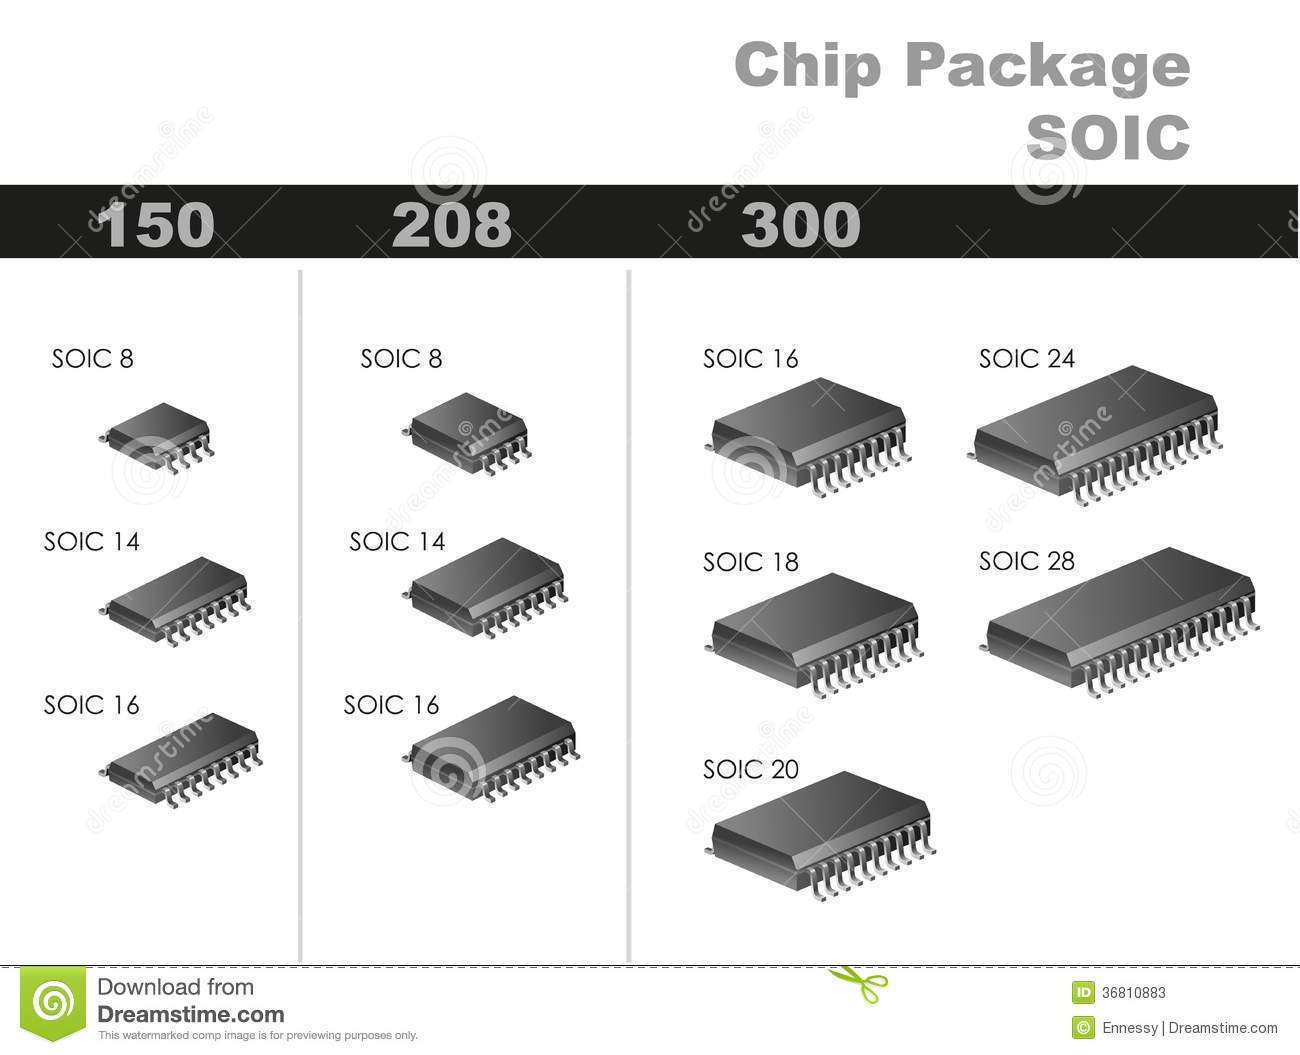 Chip Package (SOIC)